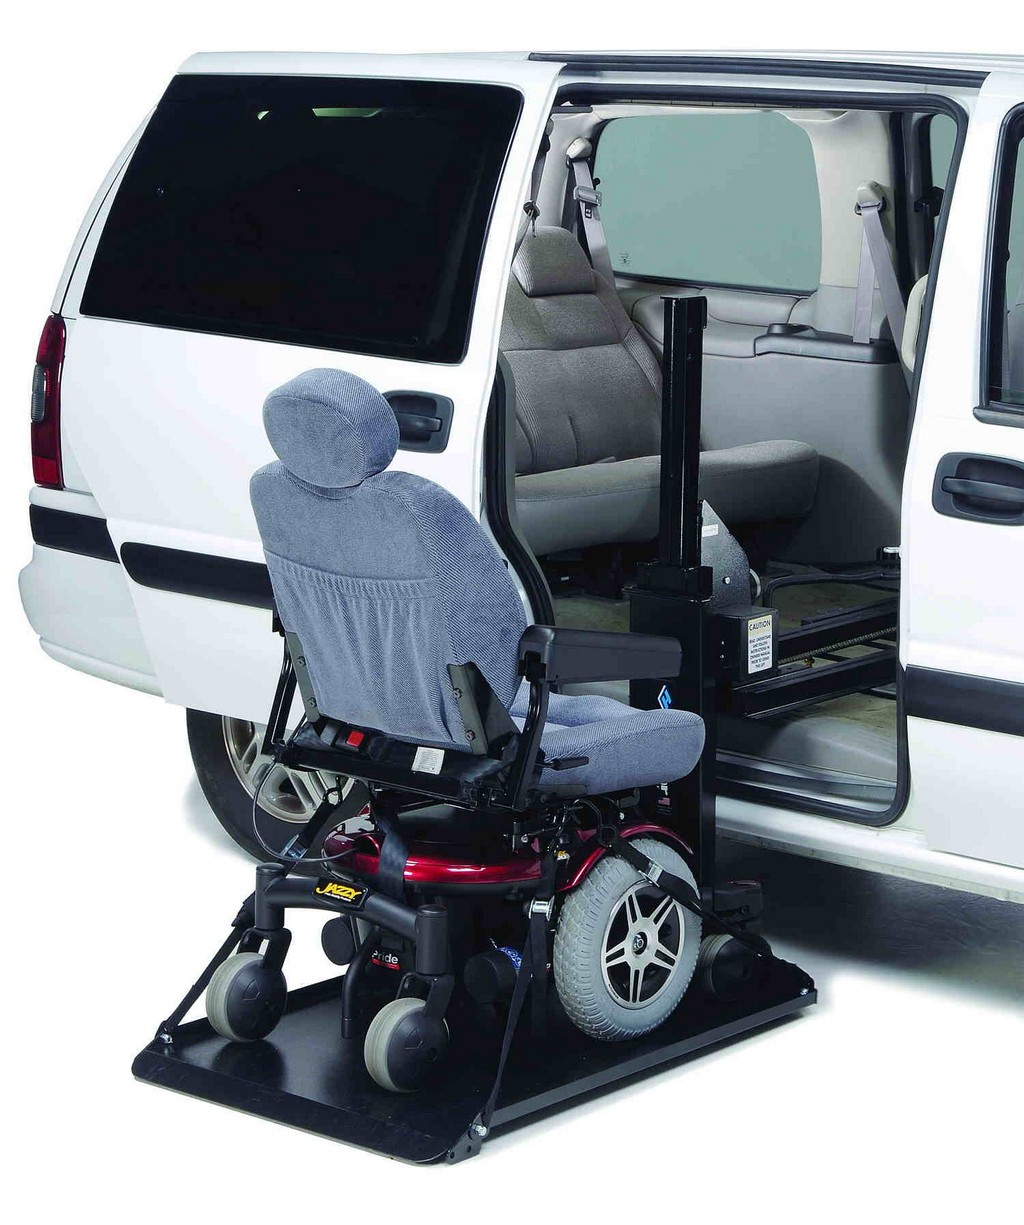 ricon wheelchair lift, electric wheel chair ramps lifts, raise wheel chair lifts, wheelchair lifts pictures